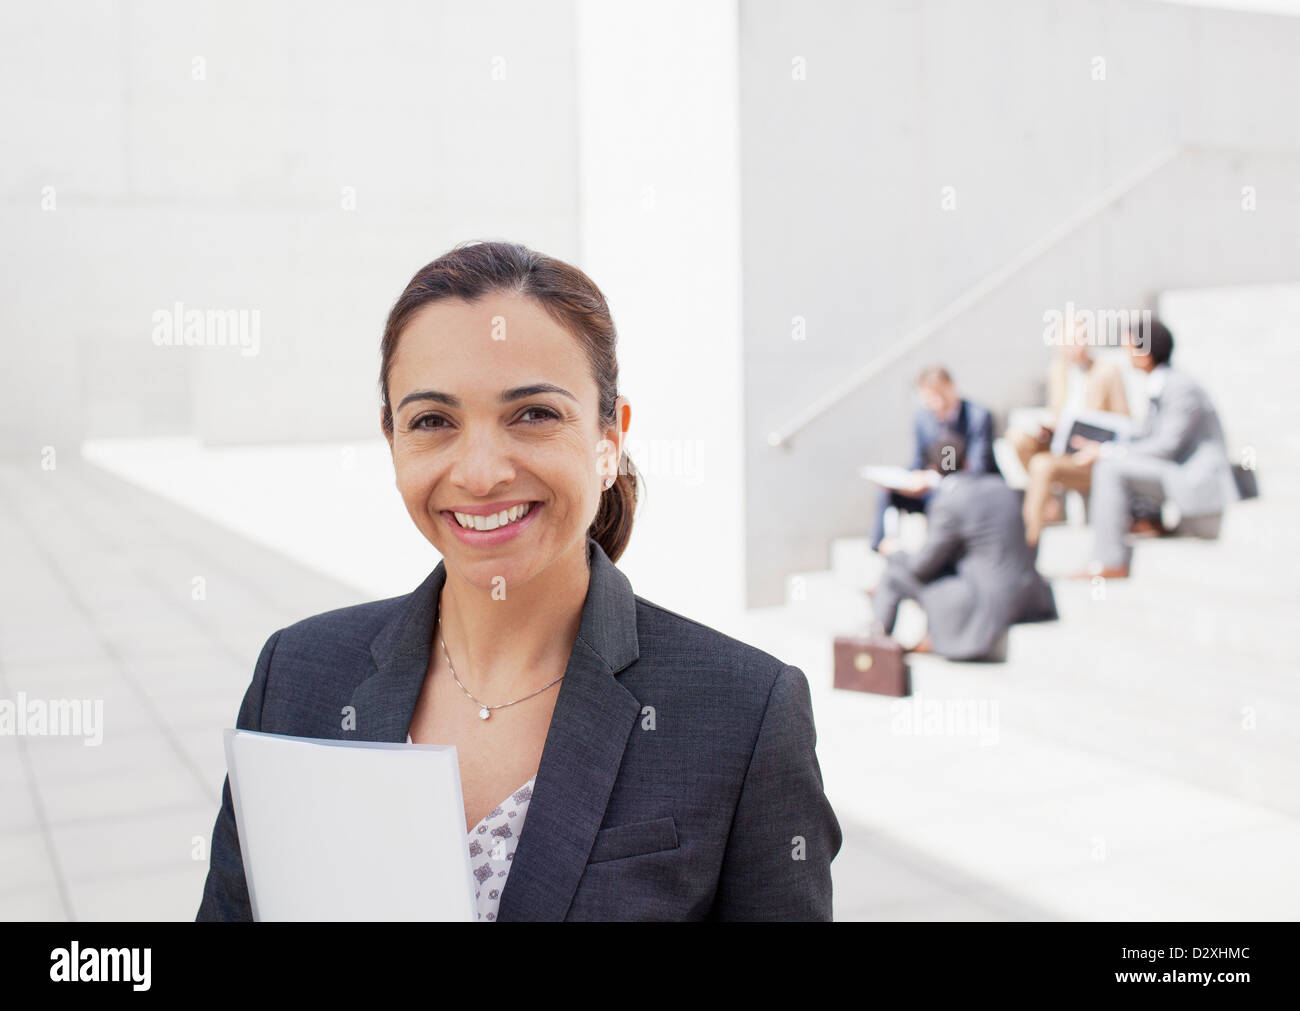 Portrait of confident businesswoman with co-workers in background - Stock Image